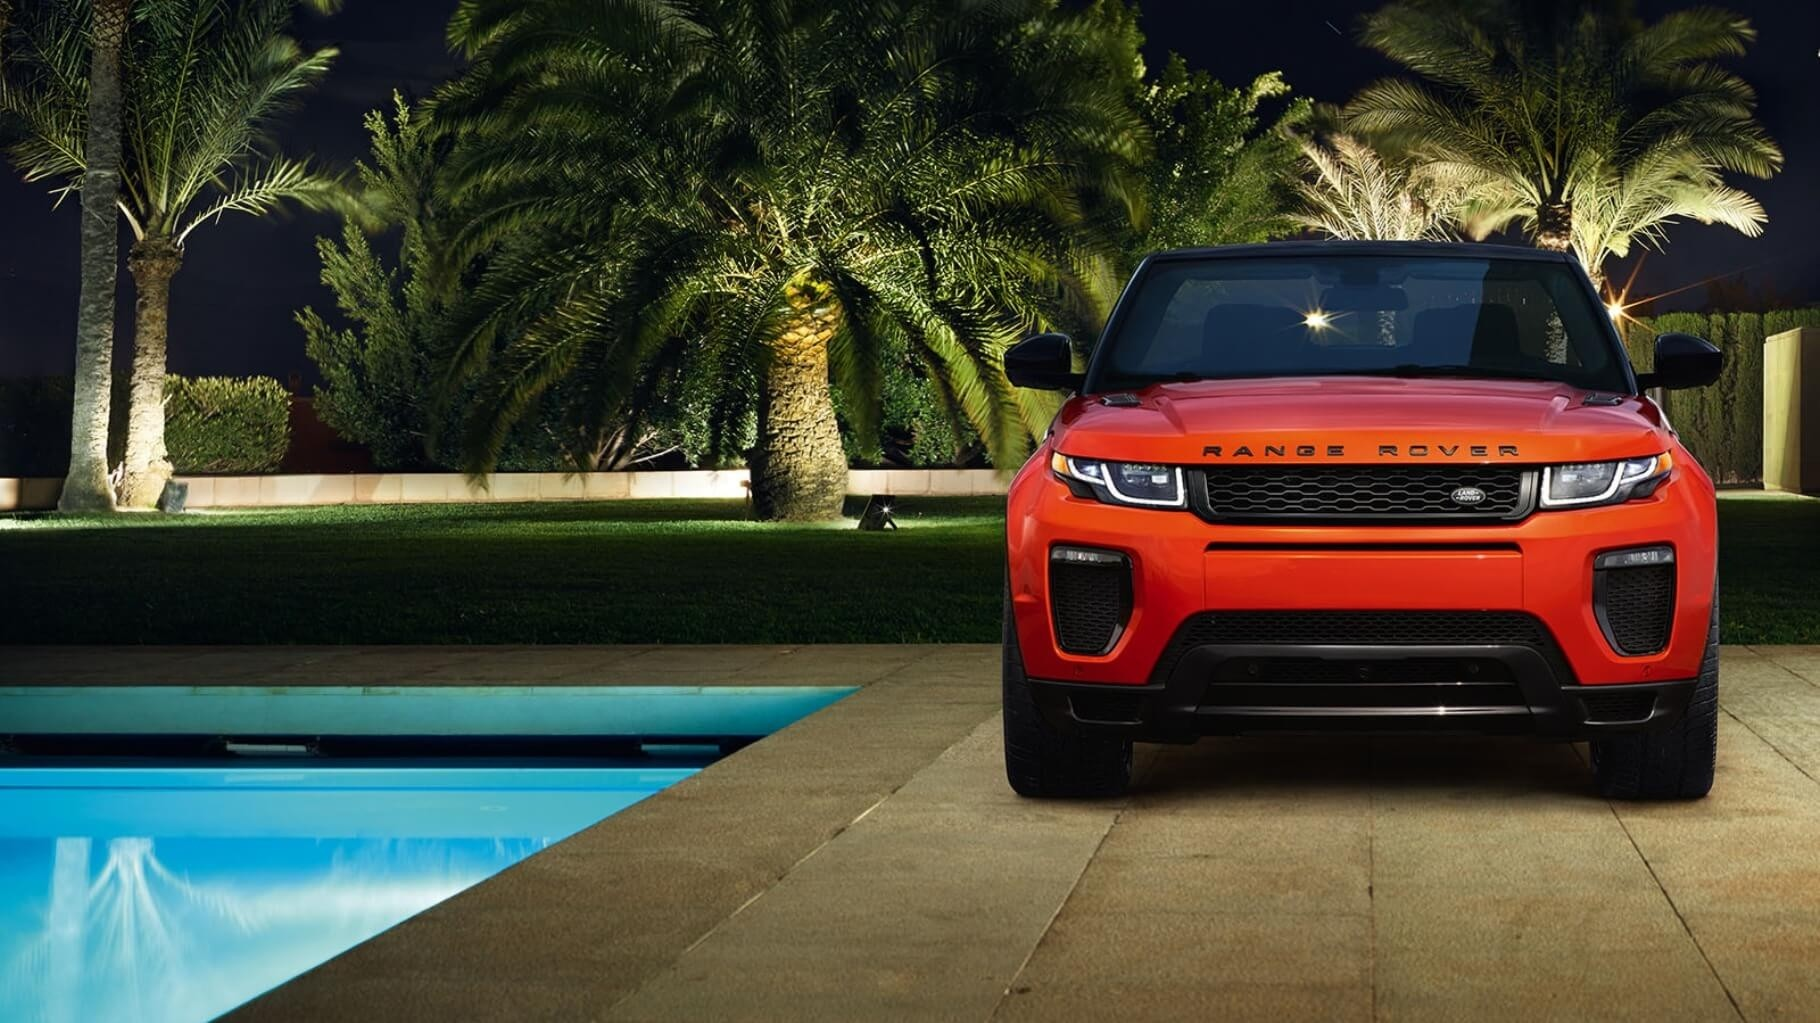 2017 Land Rover Range Rover Evoque Convertible Front End View